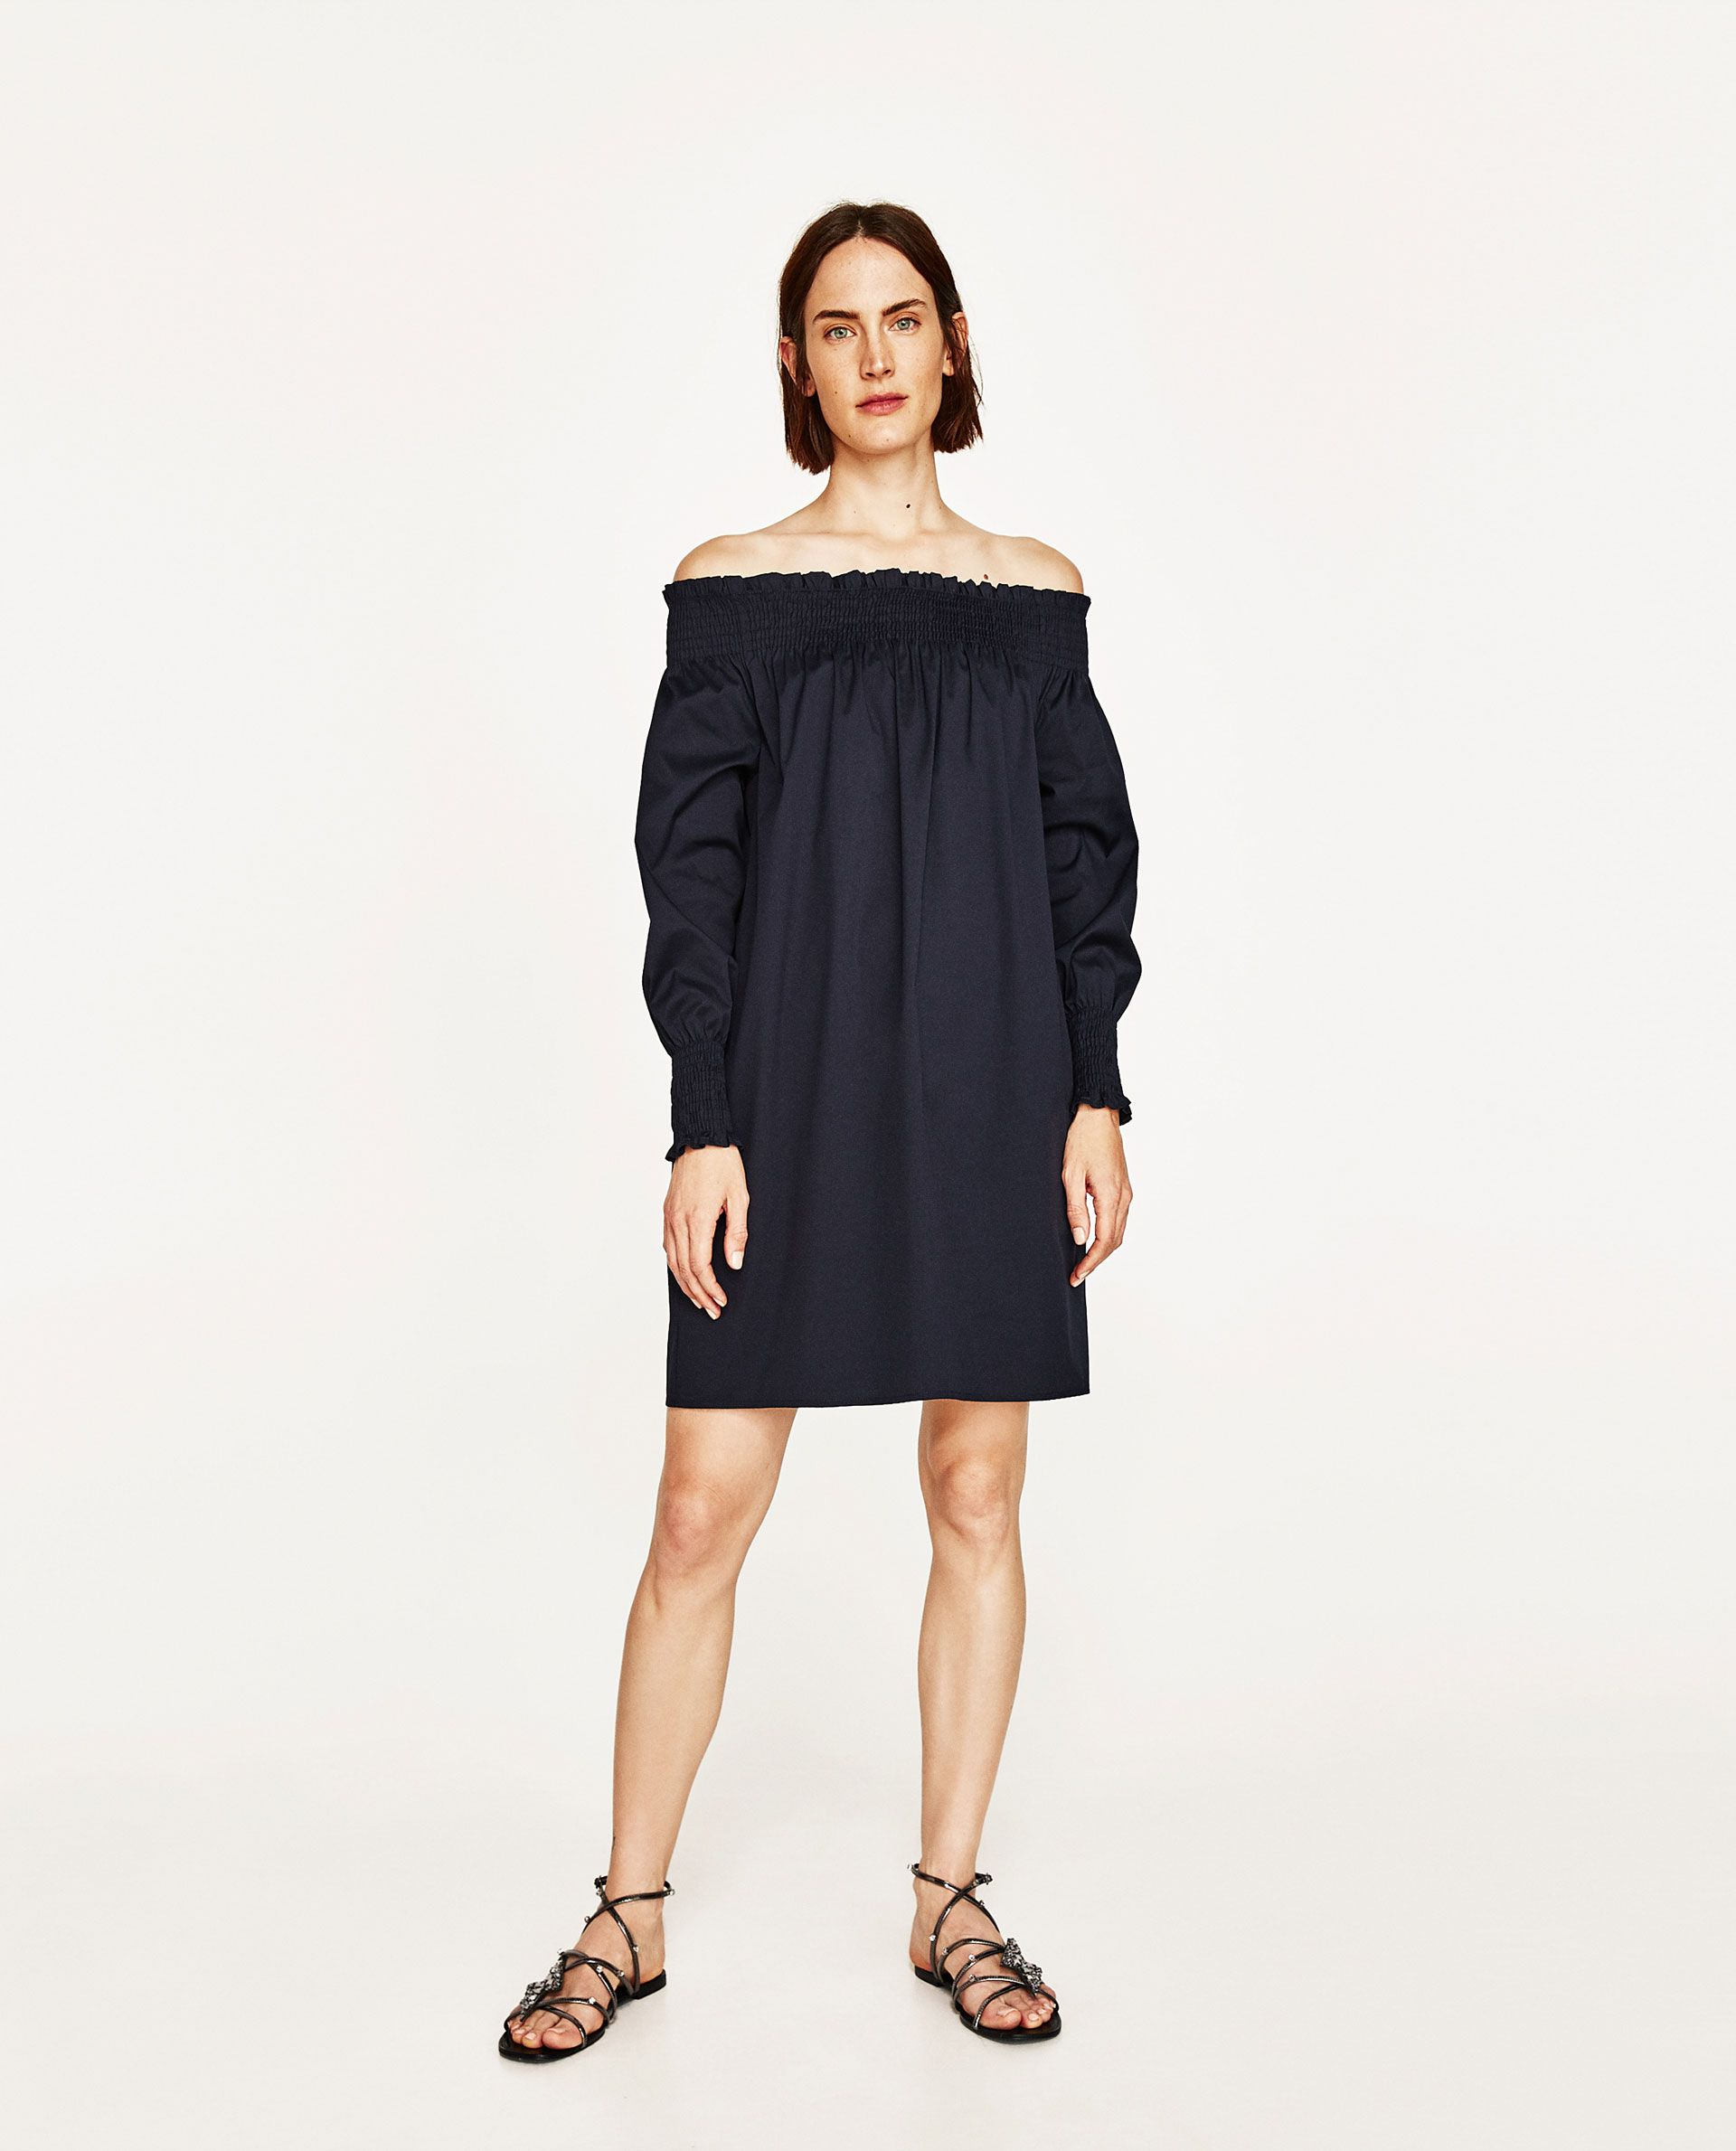 ZARA - WOMAN - OFF-THE SHOULDER DRESS